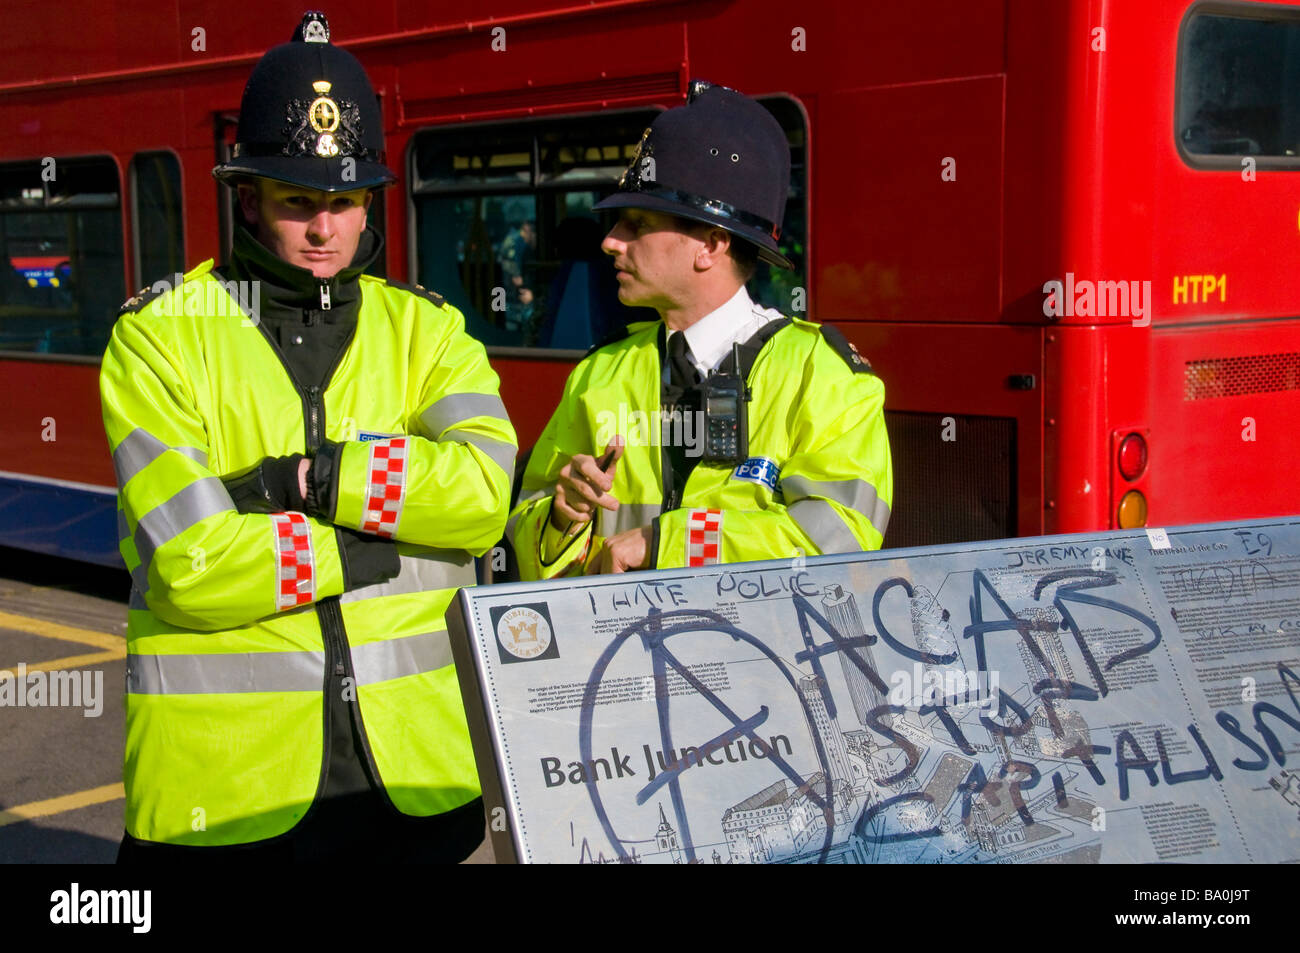 Two policemen standing by the Bank Junction sign with anti-capitalism graffitti, G20 Summit protests, London, England, - Stock Image